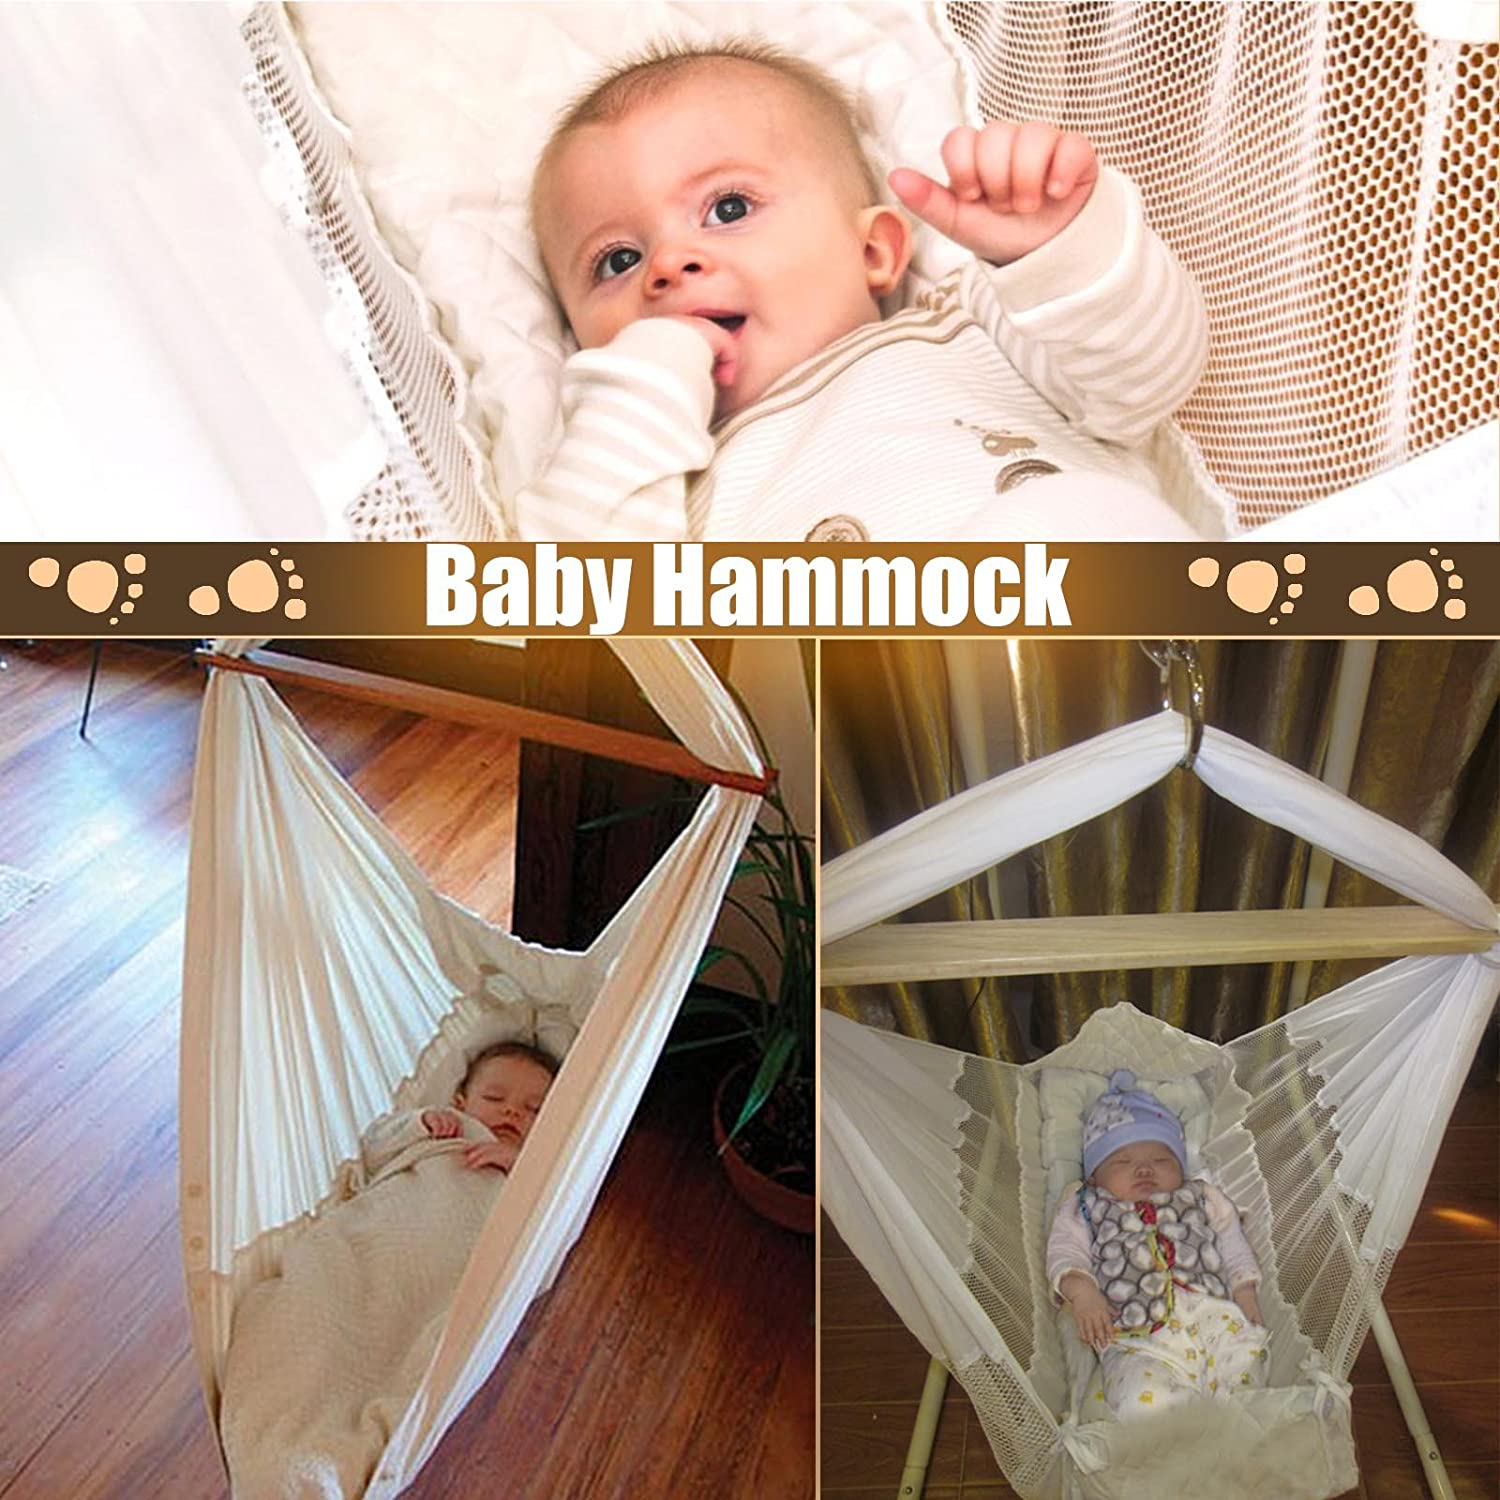 gotobuy   baby hammock bassi te cot swing bassi  cradle natures nest motion bed hammock  amazon co uk  baby gotobuy   baby hammock bassi te cot swing bassi  cradle      rh   amazon co uk